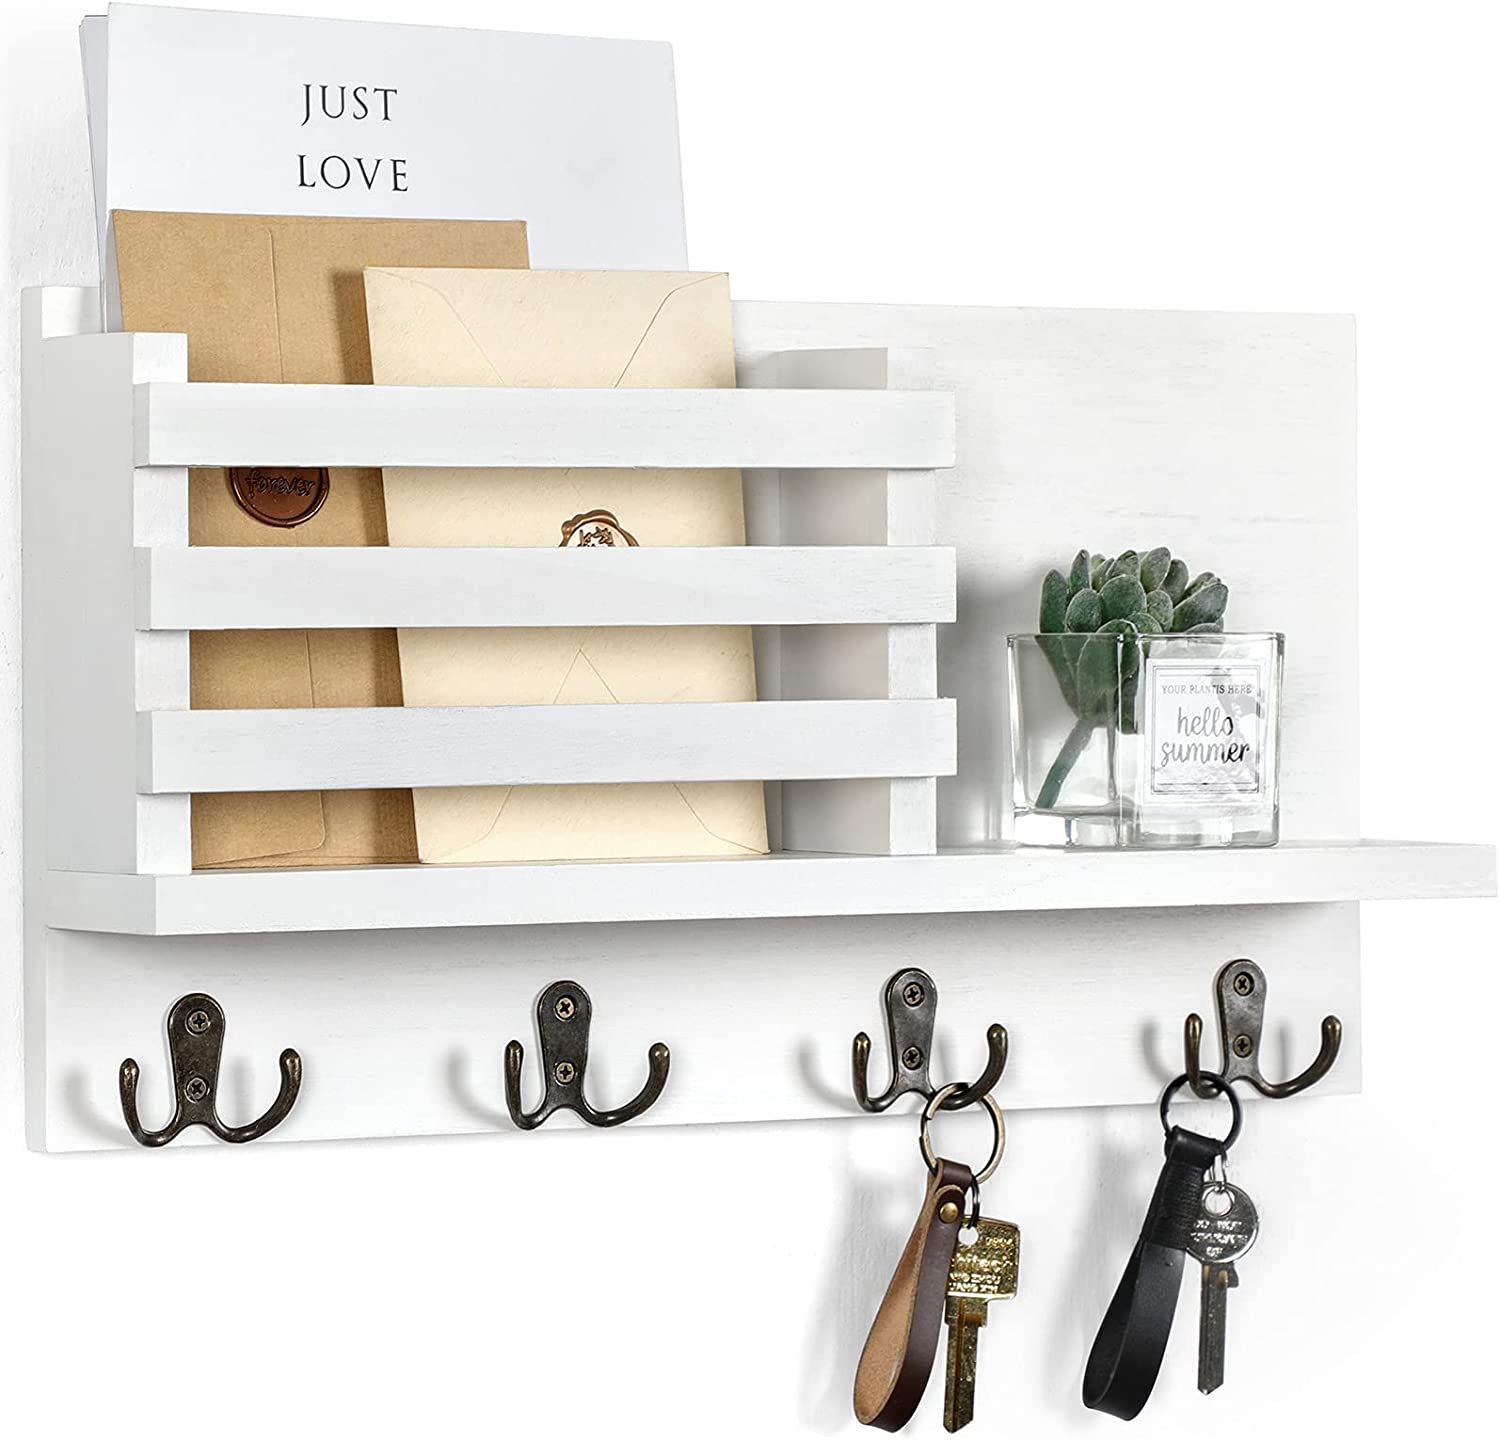 Lwenki Key & Mail Holder for Wall - Rustic Natural Paulownia Wood, 4 Double-Hook Hangers - Wall Mounted Organizer for Decor, Bags, Accessories - Hardware & Manual Included - White